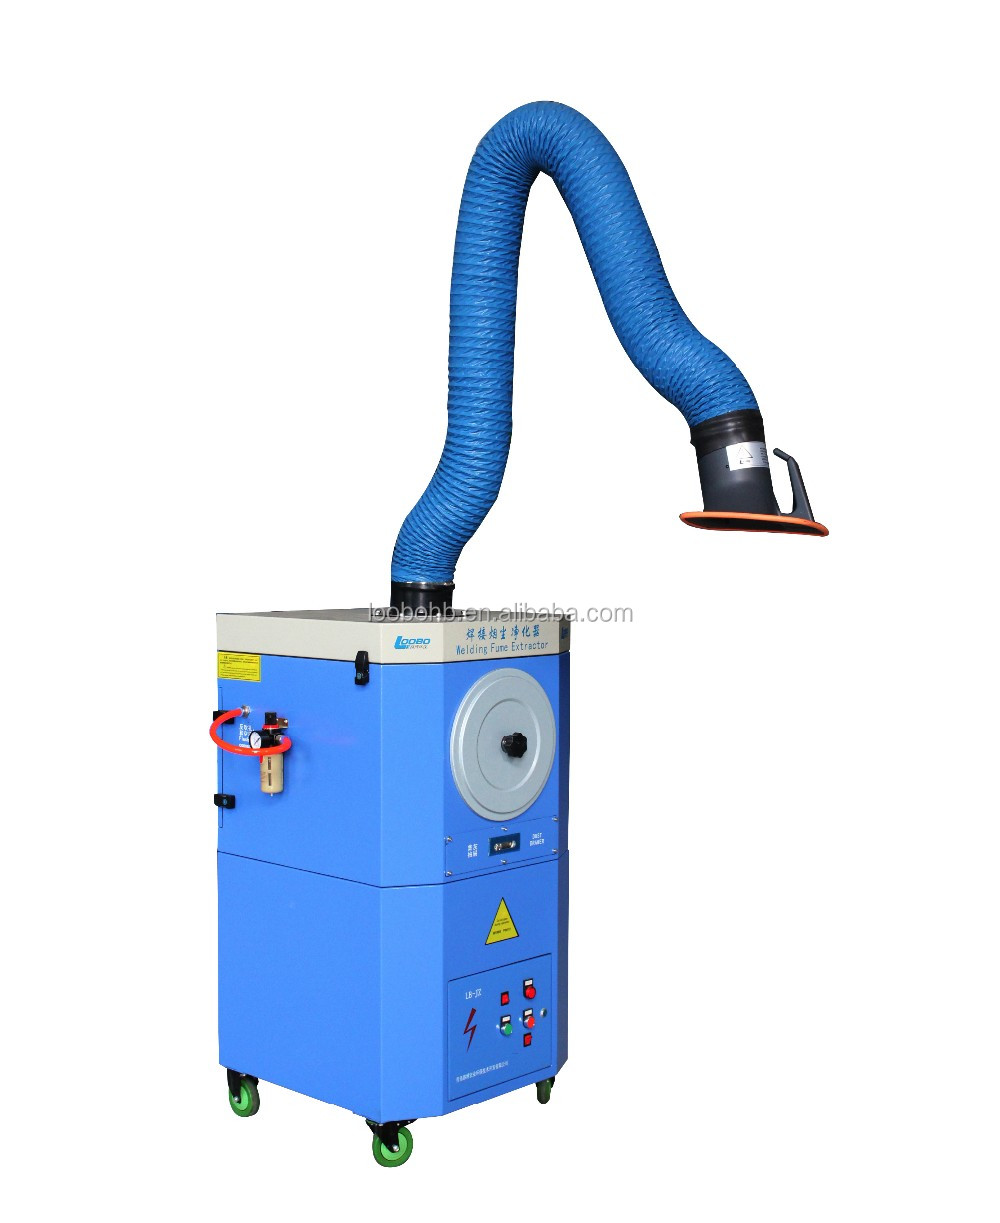 High effciency fume extractor/solder fume suction cleaner/portable soldering smoke evacuator